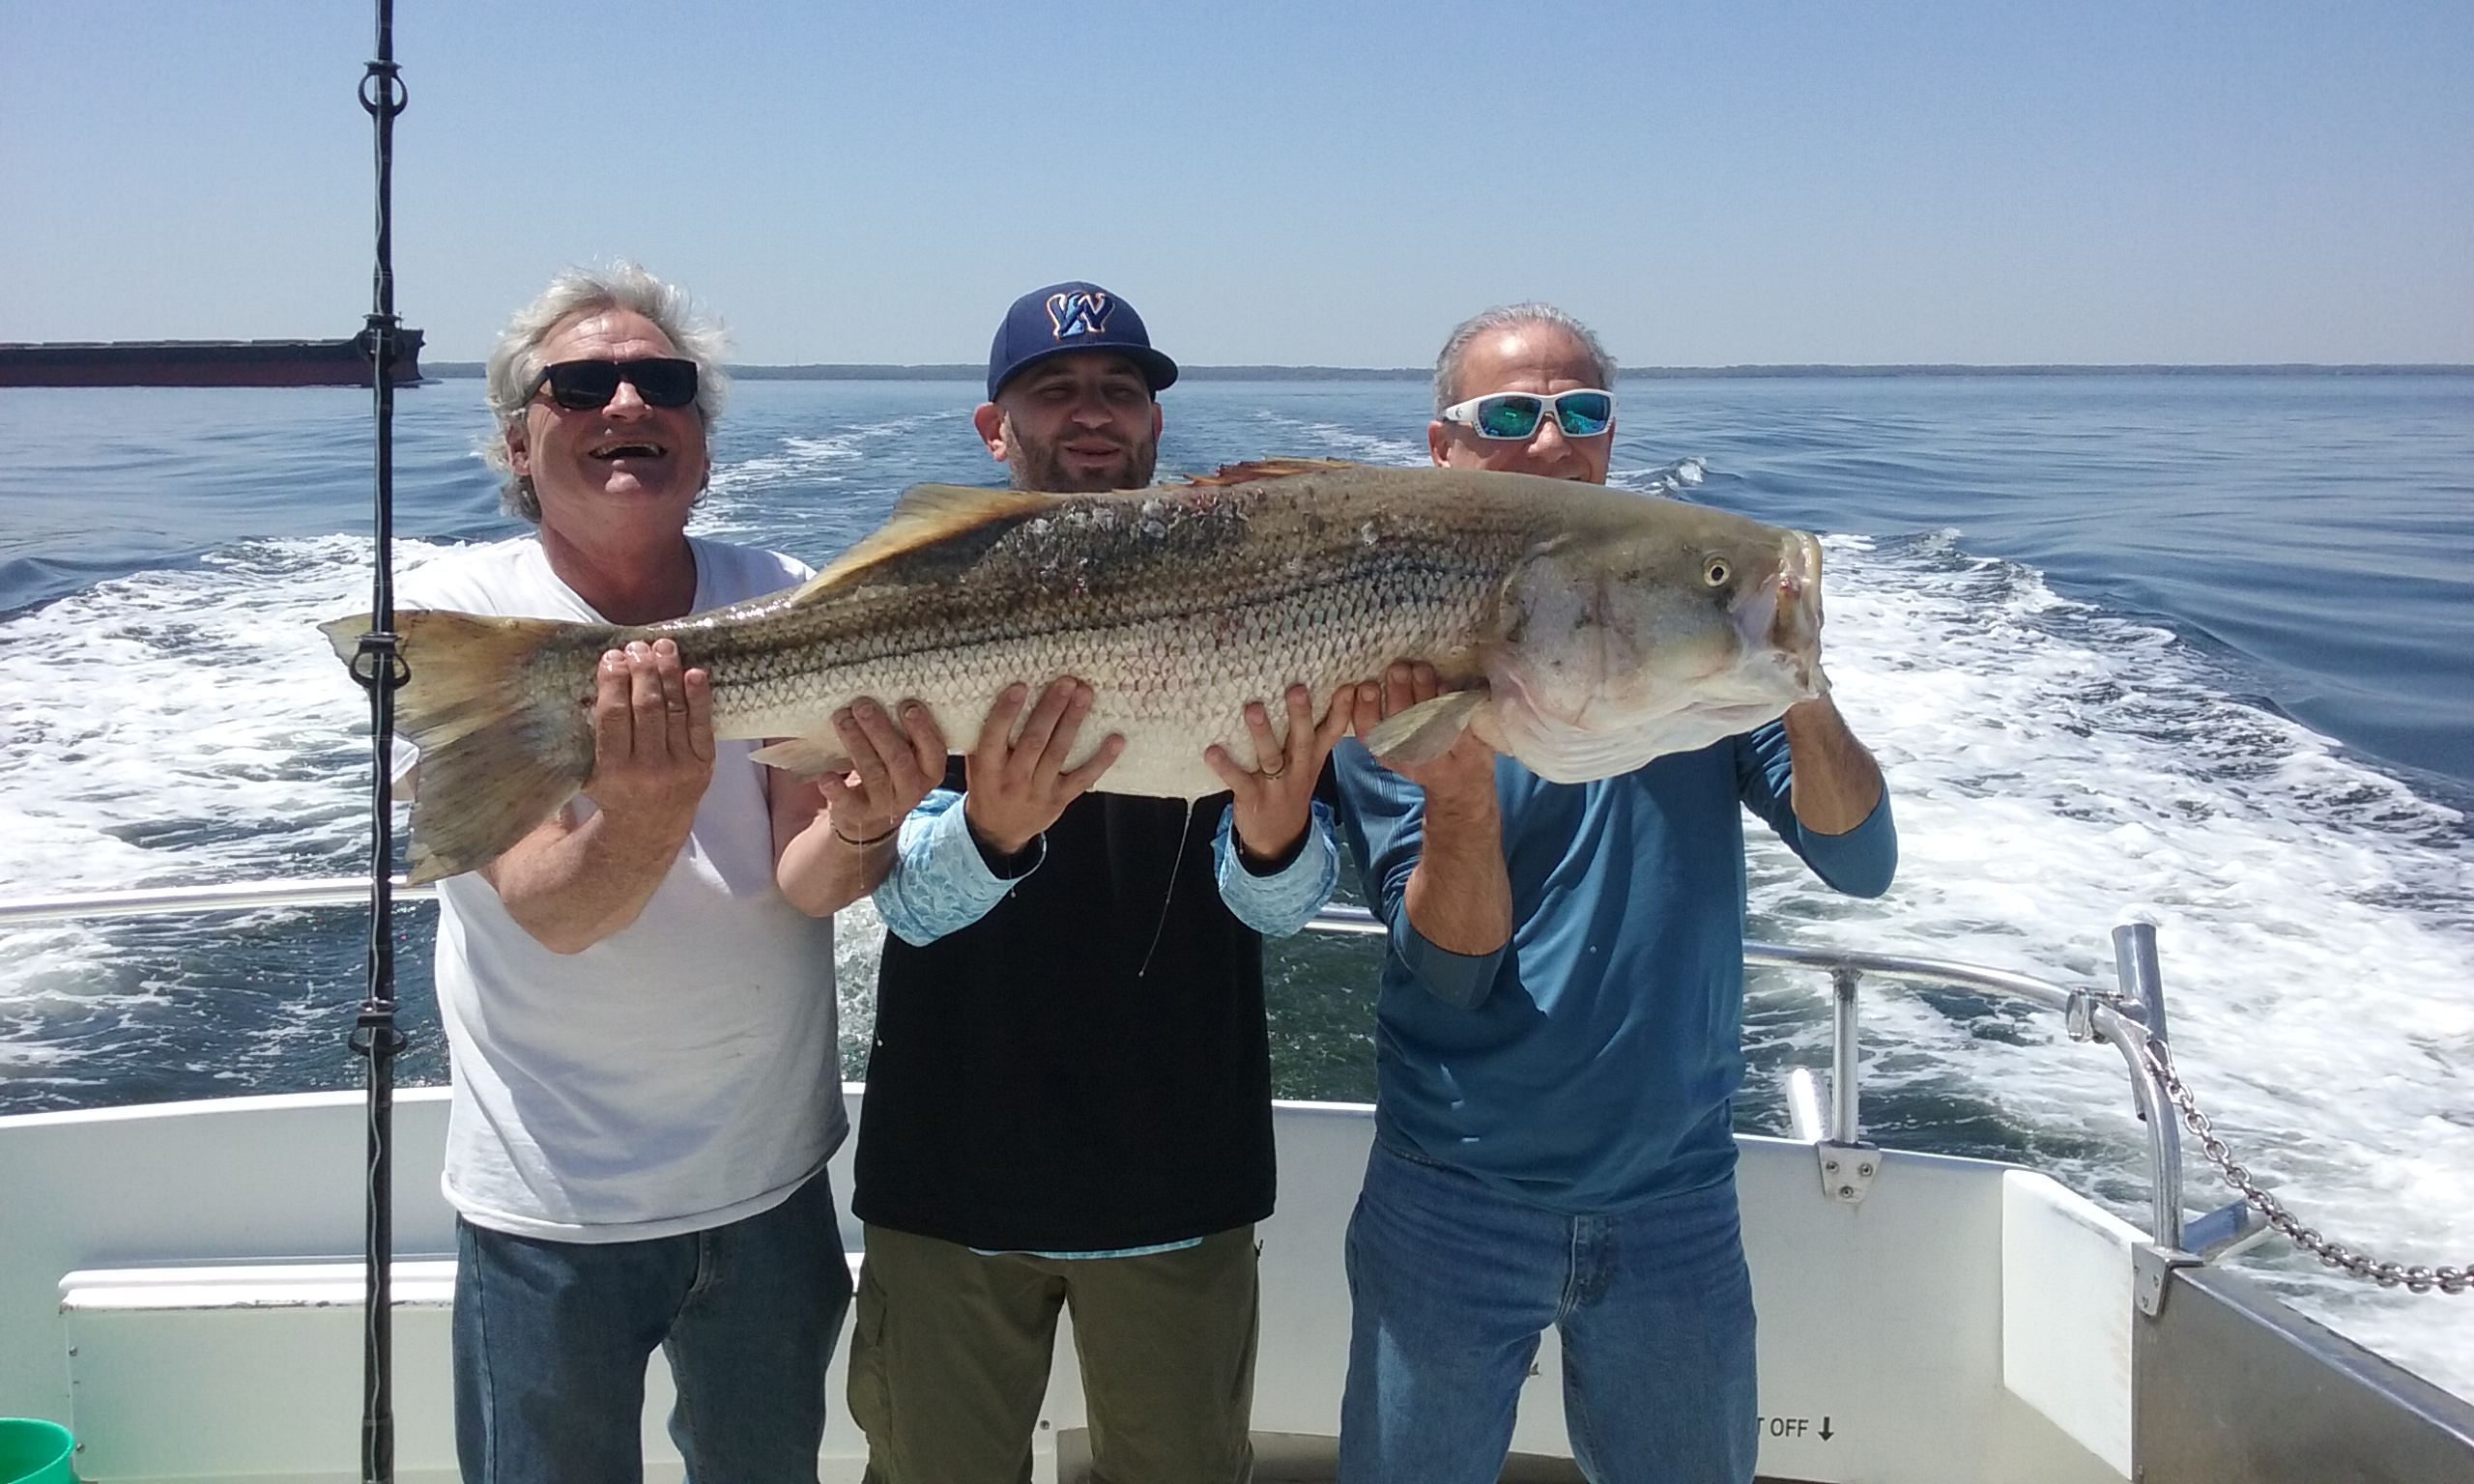 Here's the Biggest Rockfish of the Day!